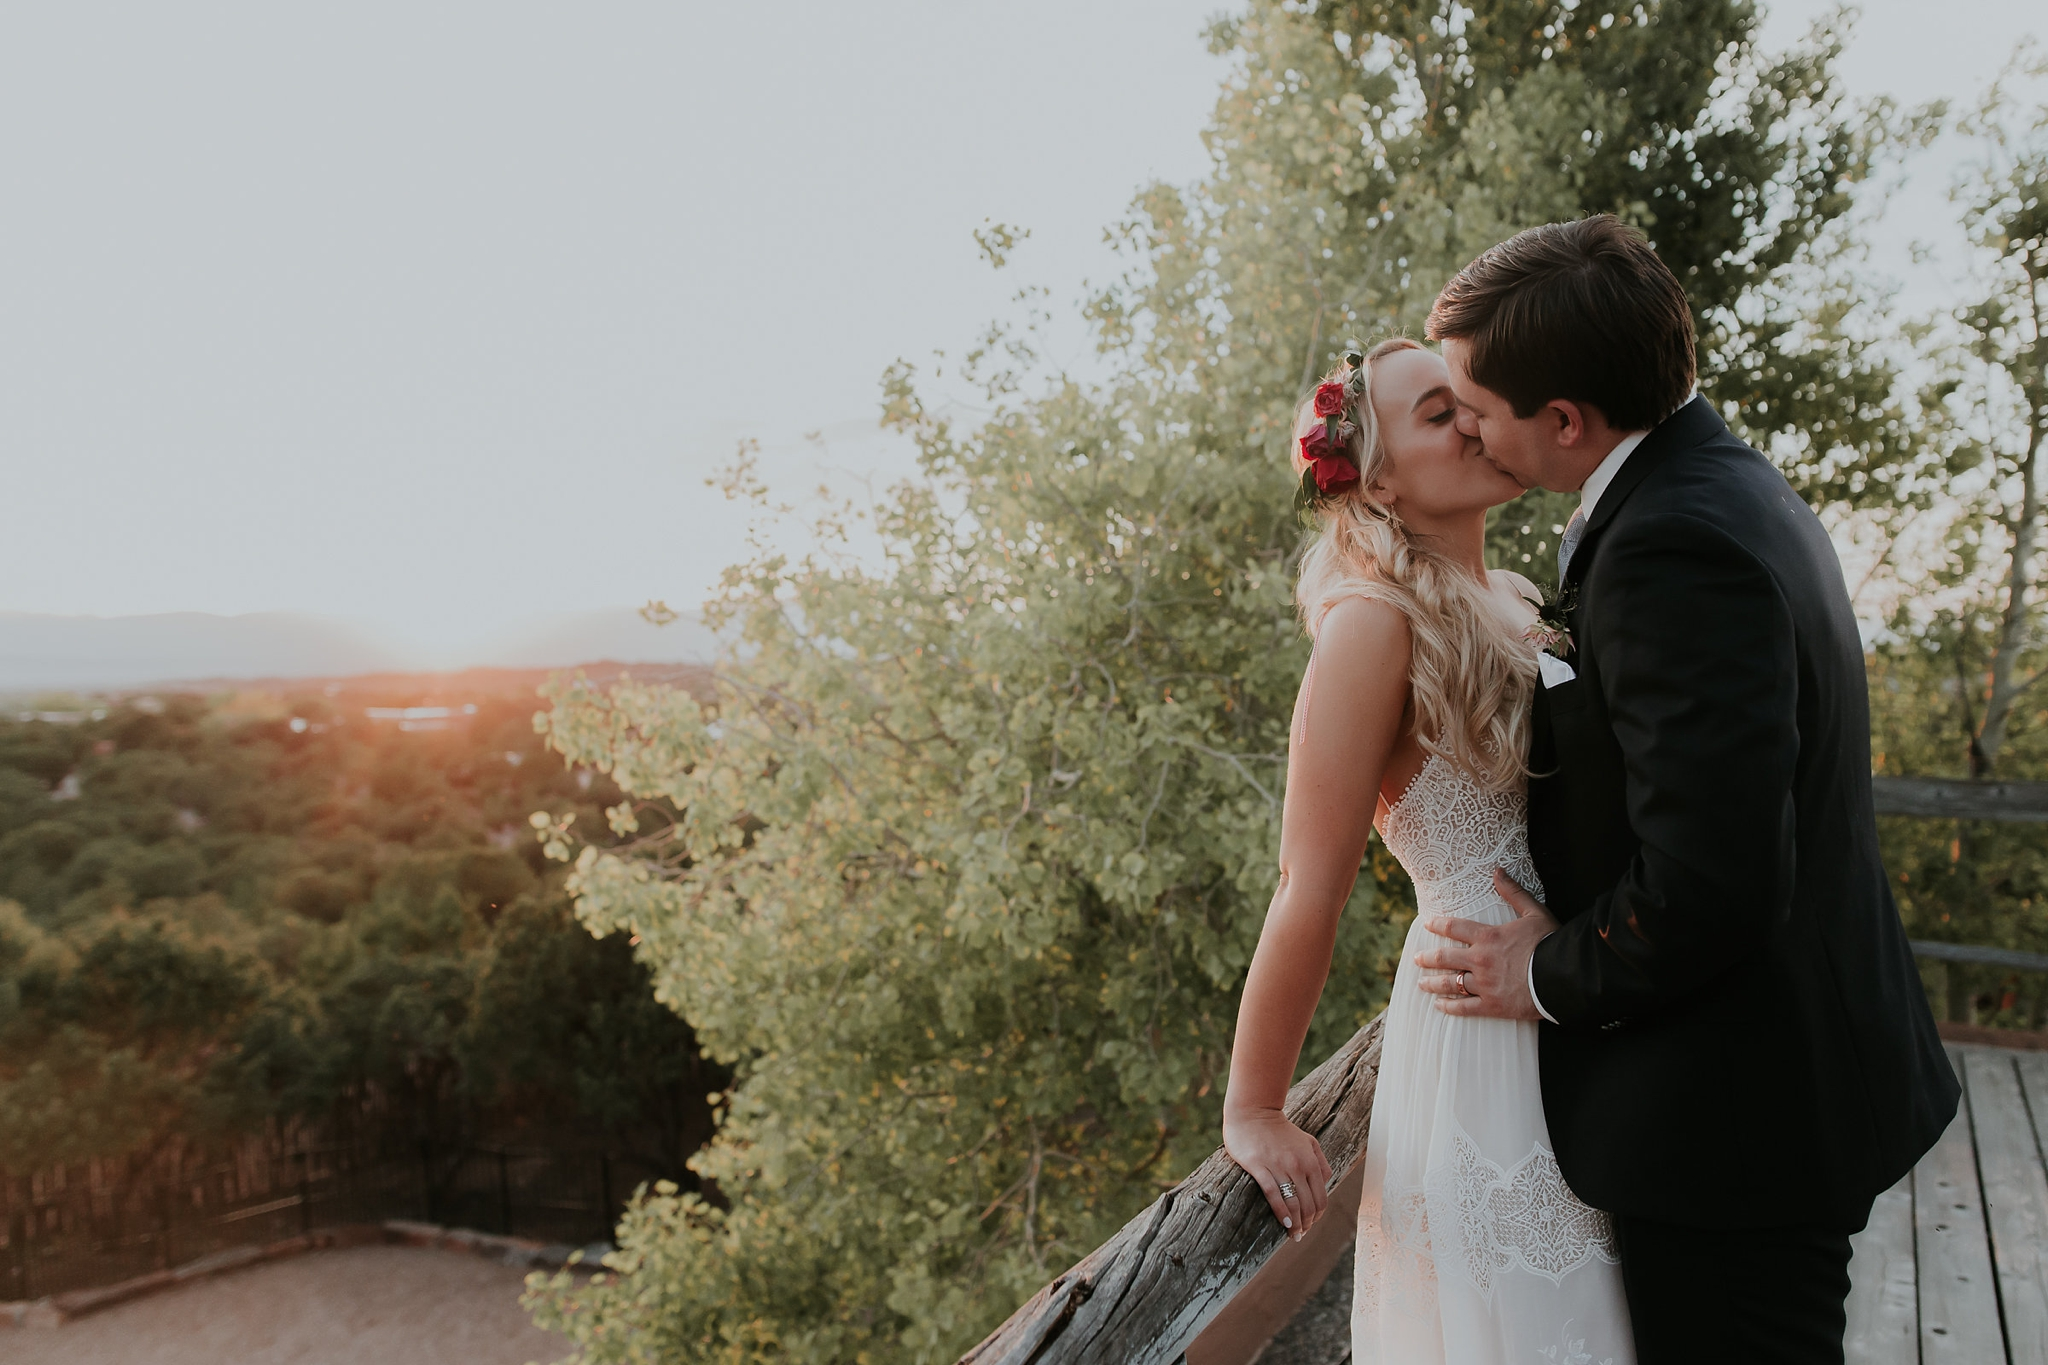 Alicia+lucia+photography+-+albuquerque+wedding+photographer+-+santa+fe+wedding+photography+-+new+mexico+wedding+photographer+-+new+mexico+wedding+-+wedding+venues+-+new+mexico+wedding+venues+-+colorado+wedding+venues_0099.jpg